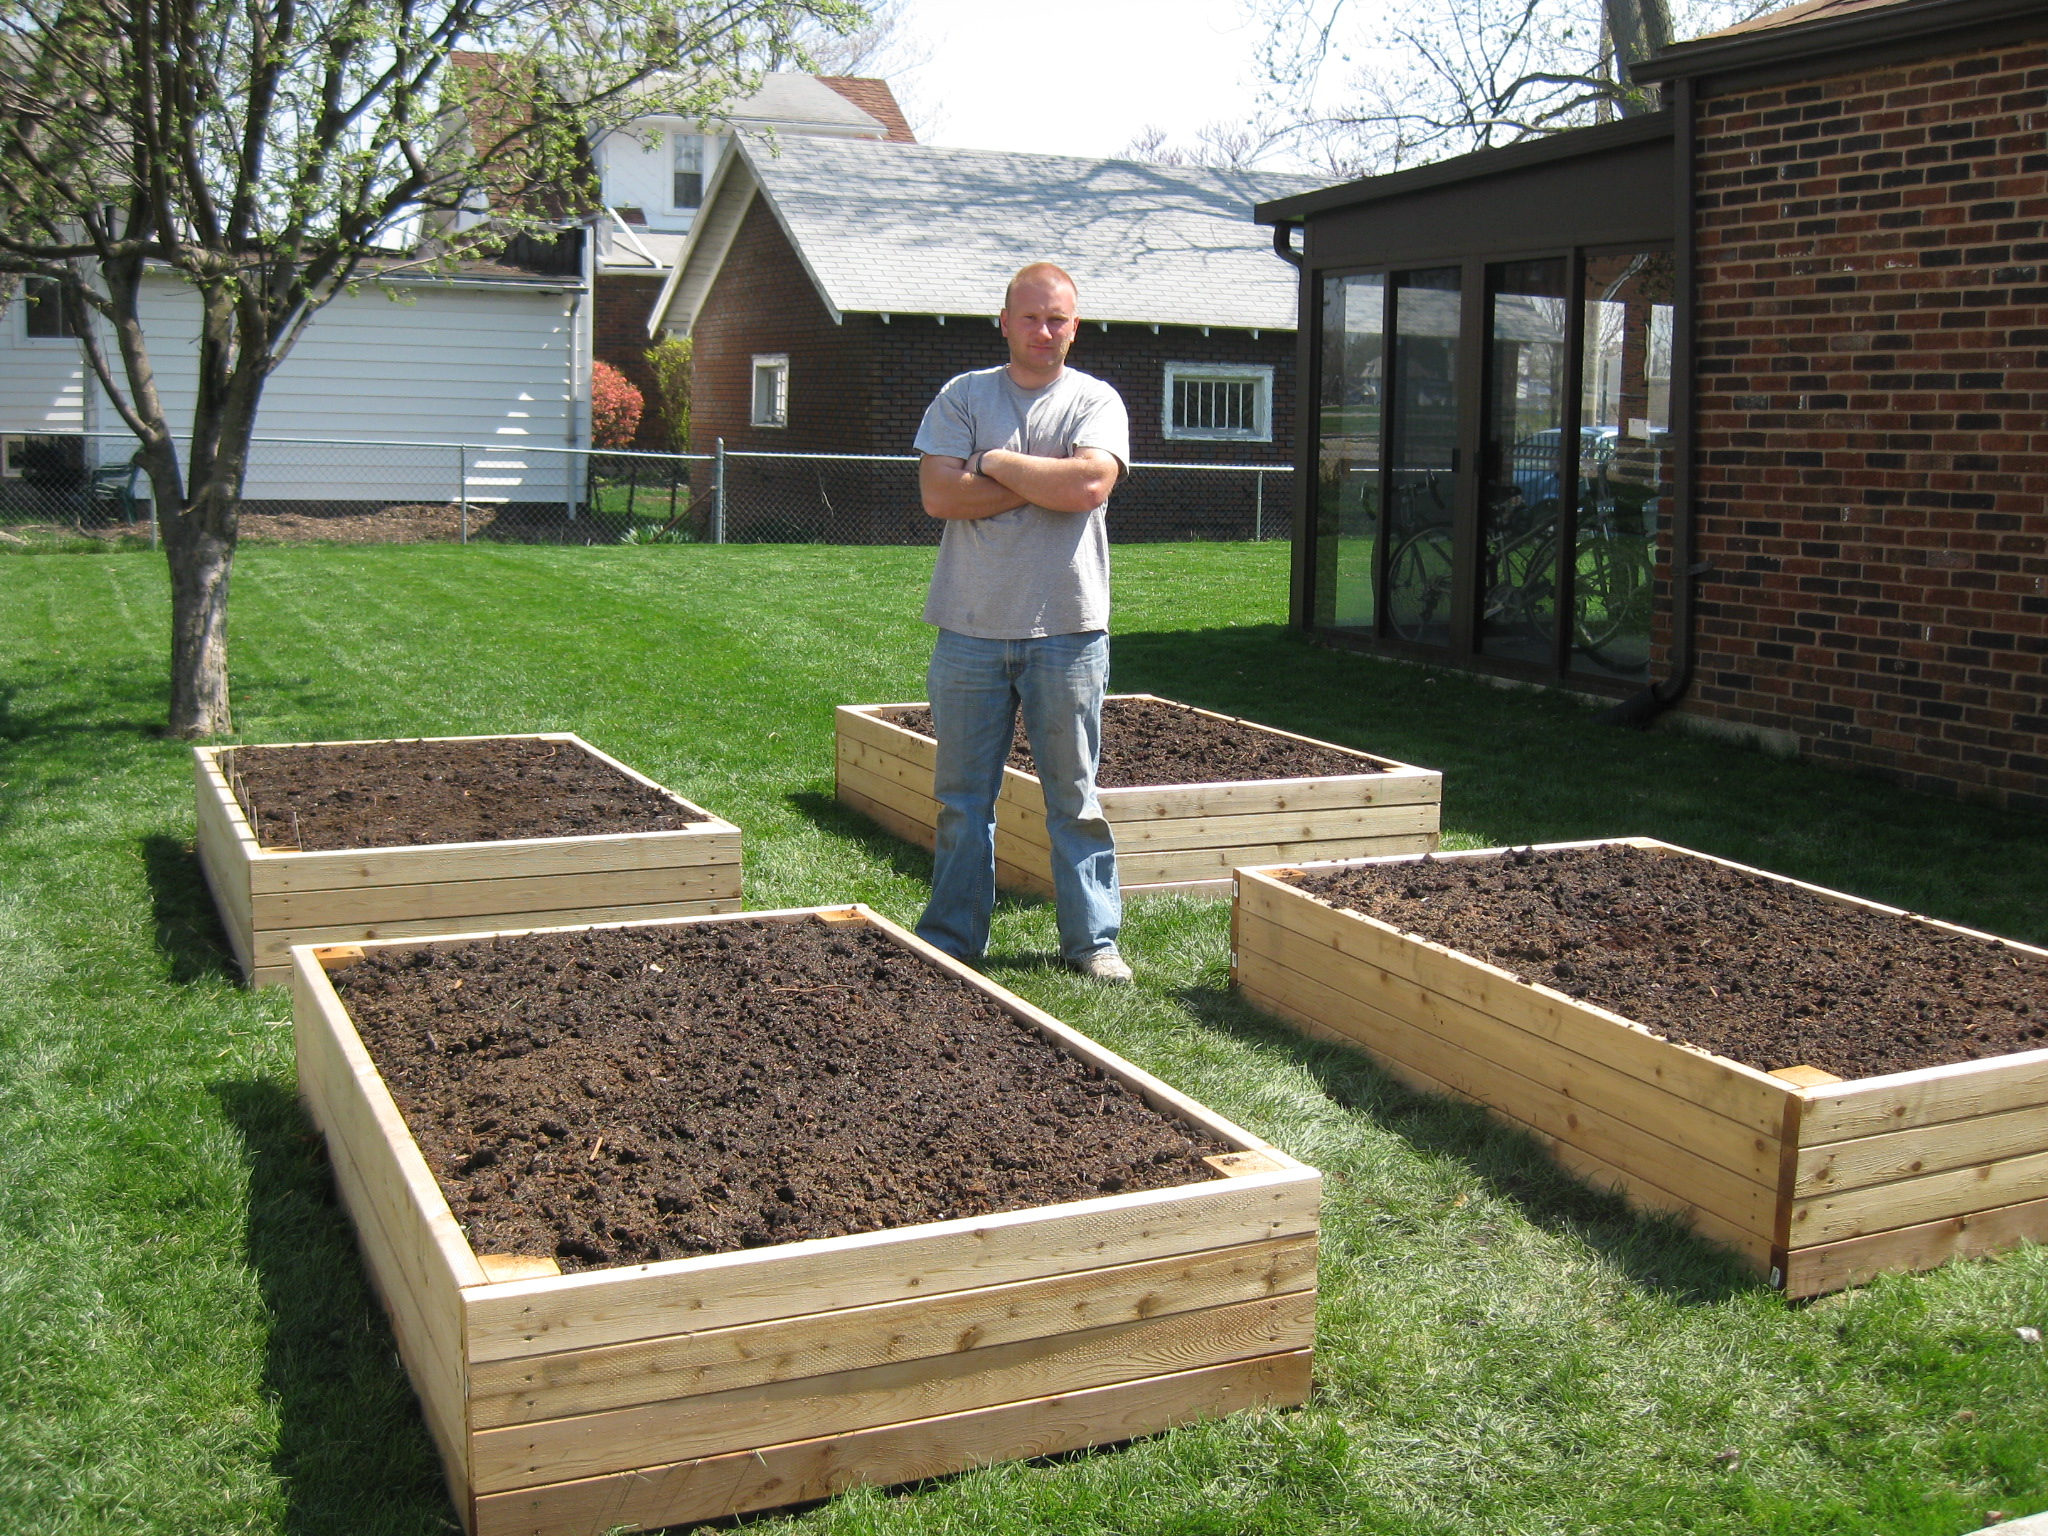 gardner better soil - Planting Beds Design Ideas